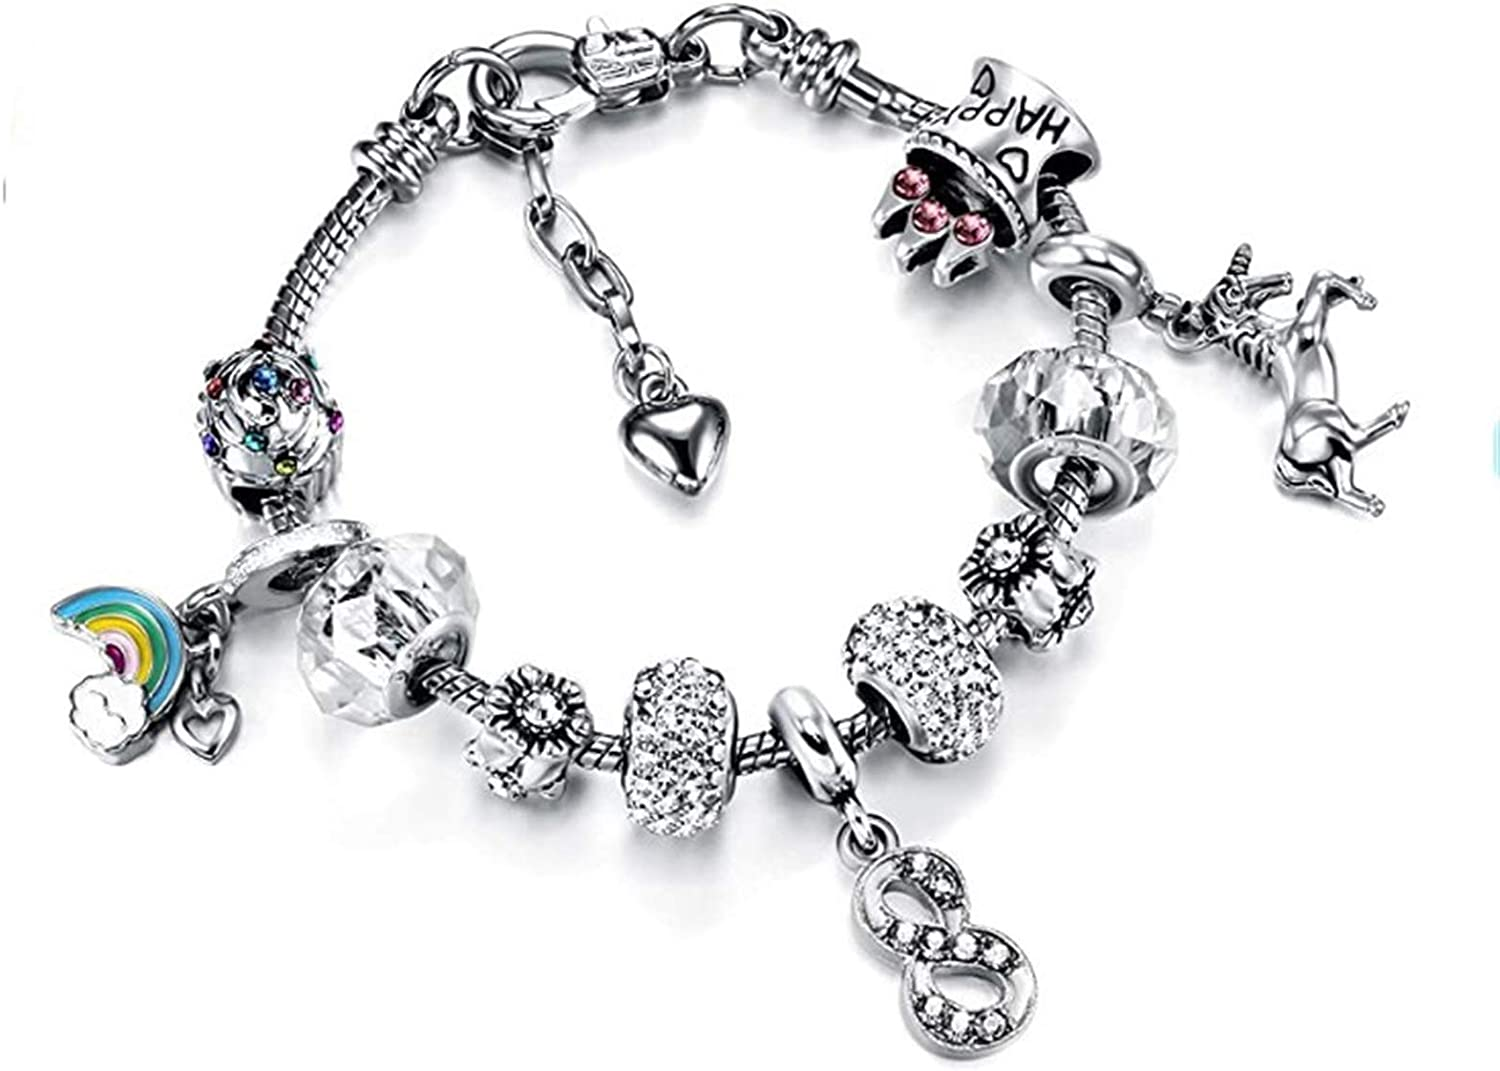 JIAJBG Max 86% OFF Charms Bracelet 16Cm Max 55% OFF Ajustable Flower Beads for Bangle Wo